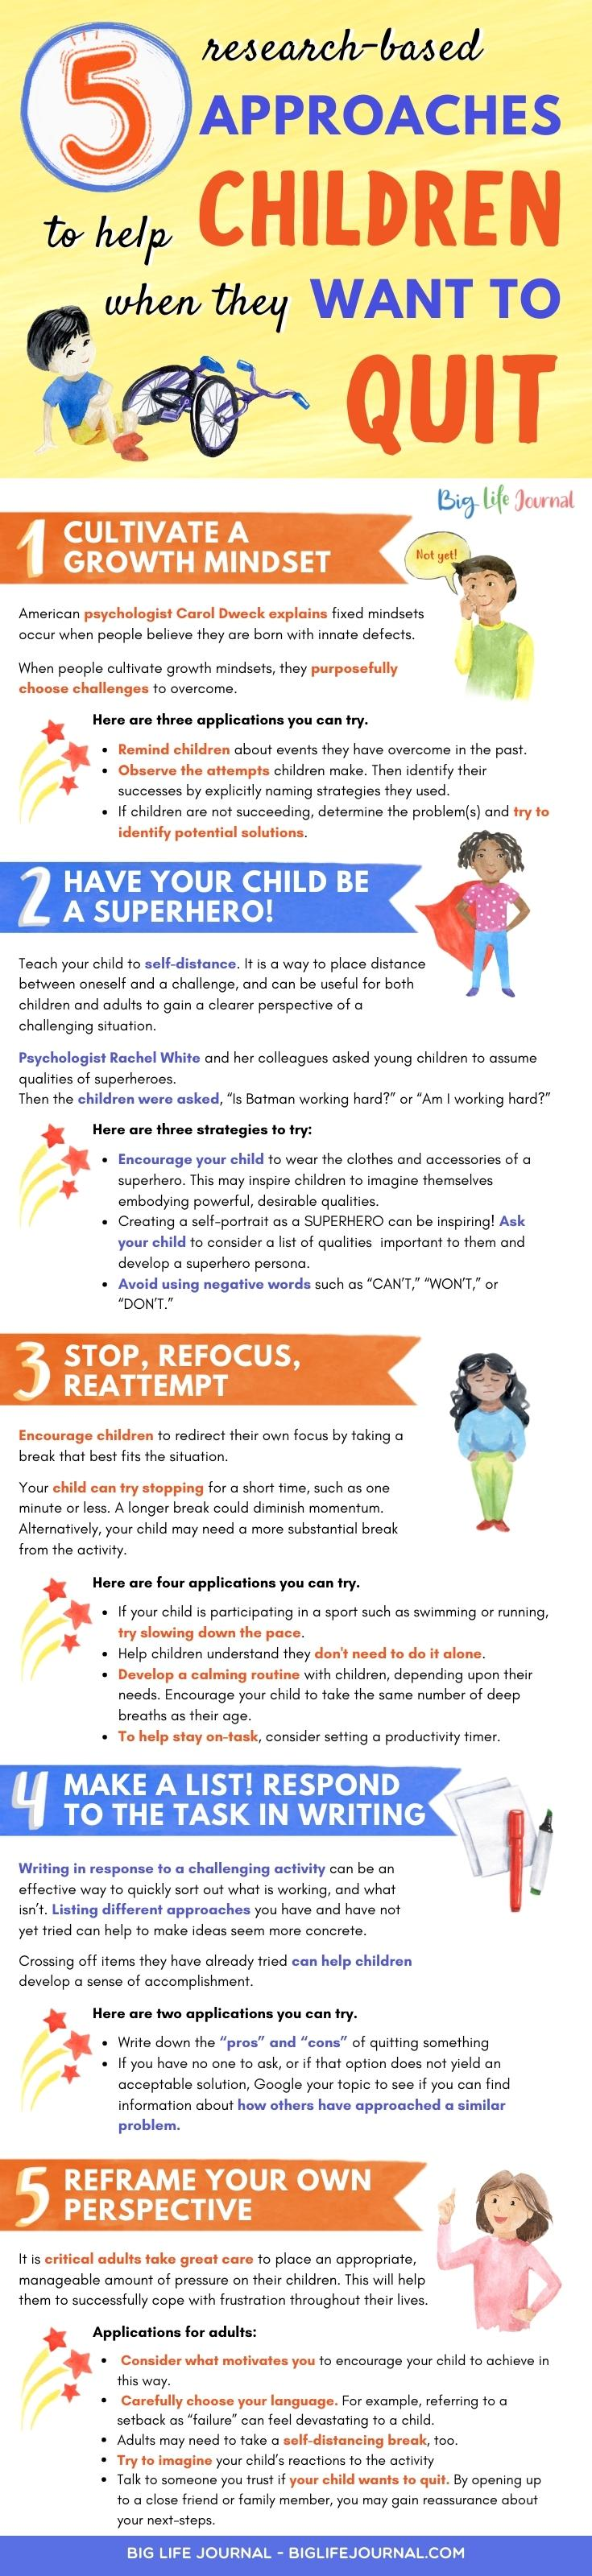 5 research-based approaches to help children when they want to quit!